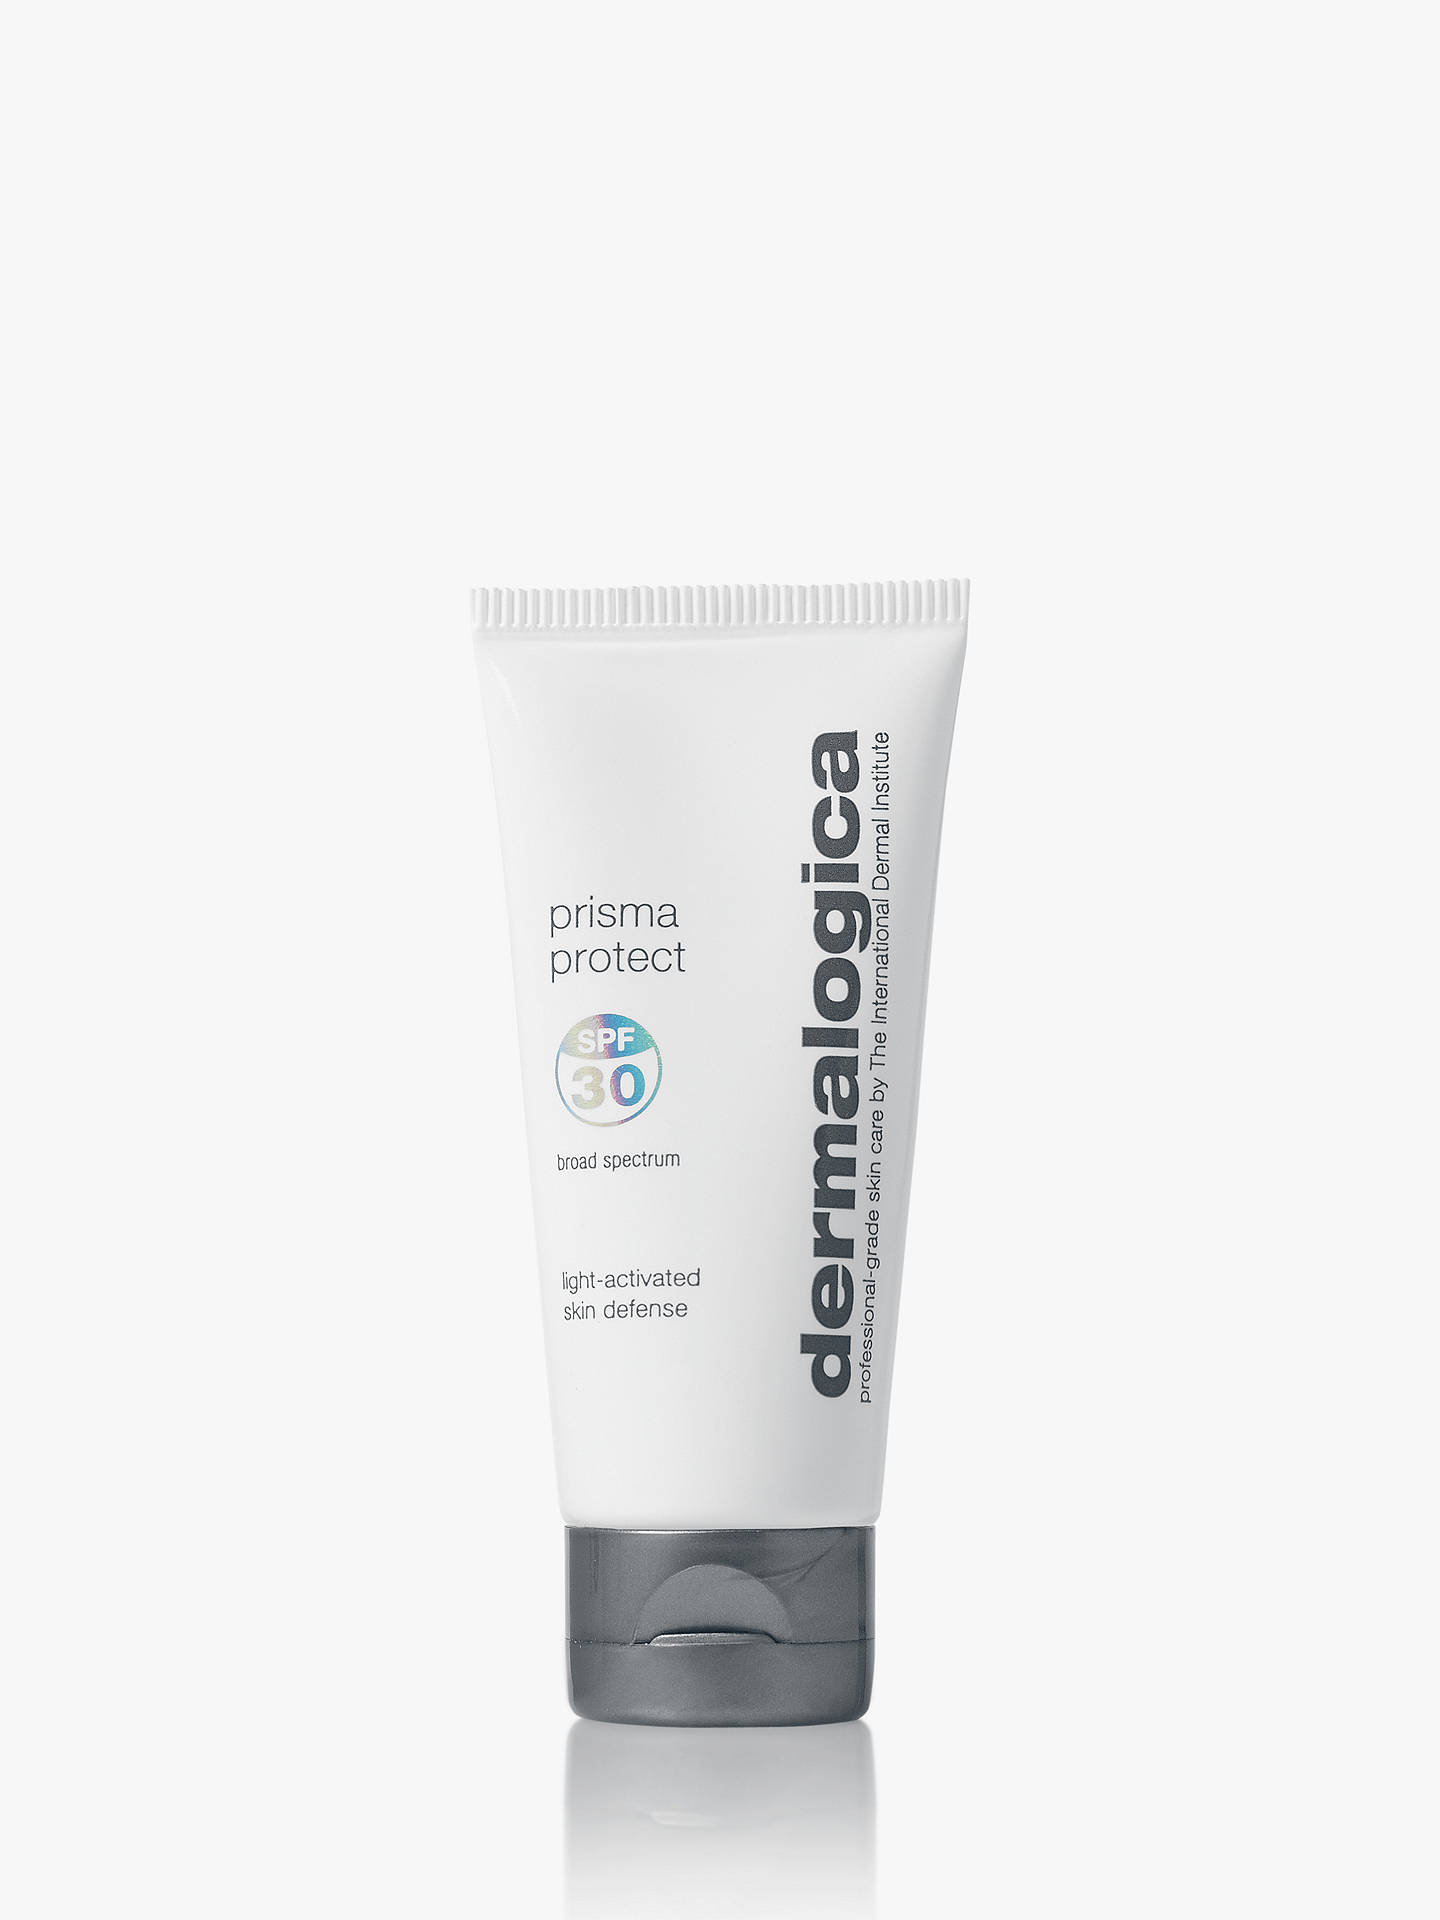 Buy Dermalogica Prisma Protect SPF30 Moisturiser, 12ml Online at johnlewis.com